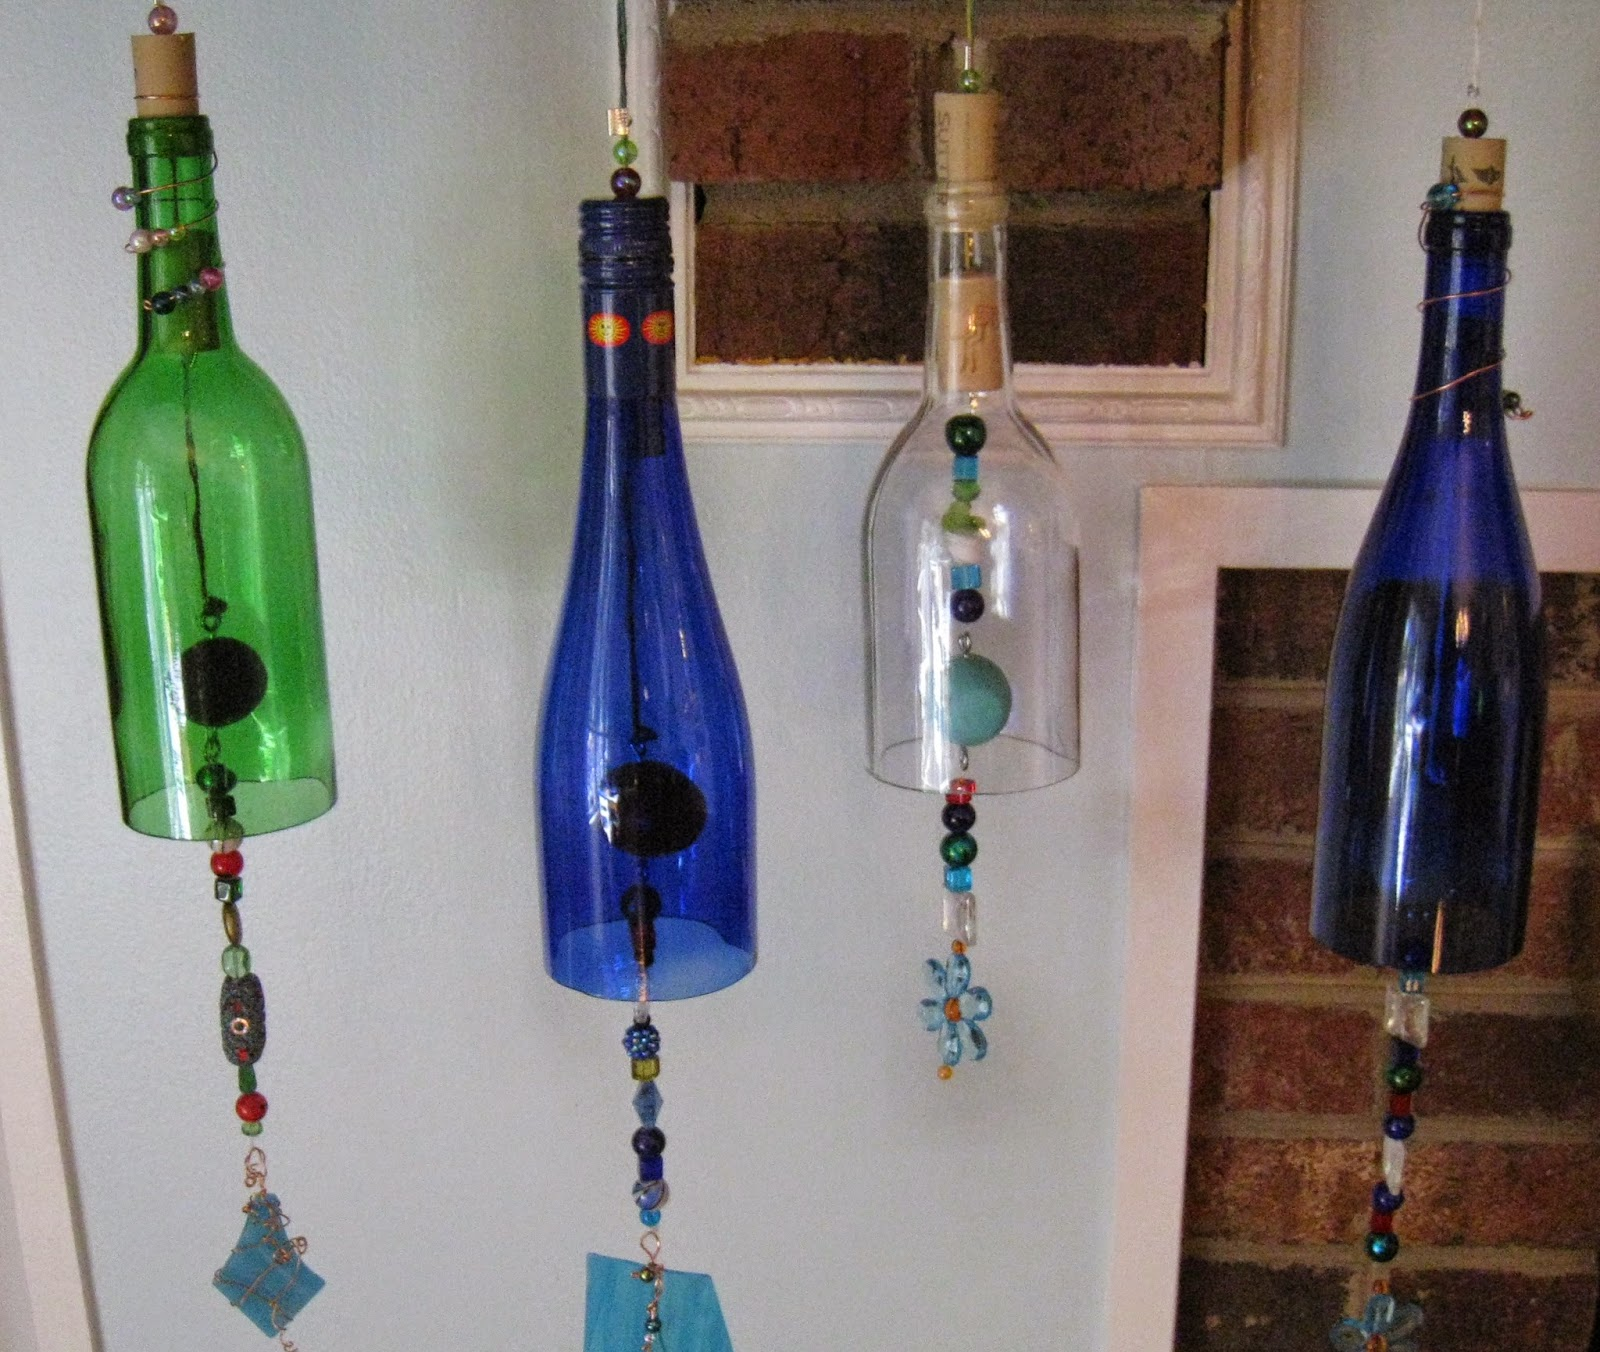 How to Make Wine Bottle Wind Chime photo